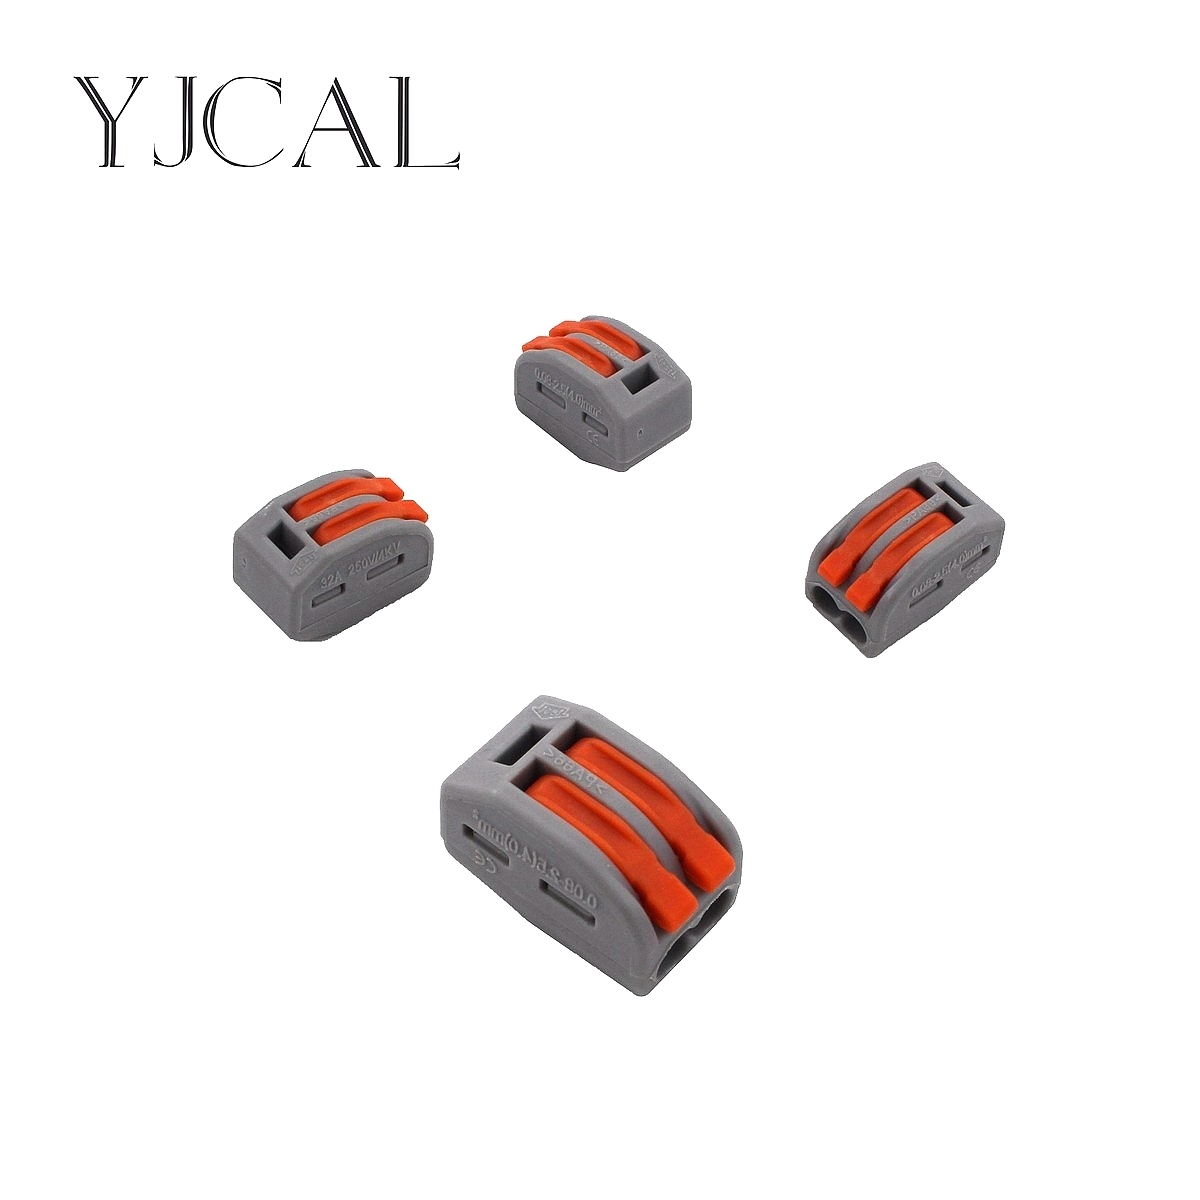 Wago Type 222-412 30PCS Universal Compact Wiring Conector Terminal Block Connectors Terminator Wire Connector AWG 28-12 10 pieces lot 222 413 universal compact wire wiring connector 3 pin conductor terminal block with lever awg 28 12